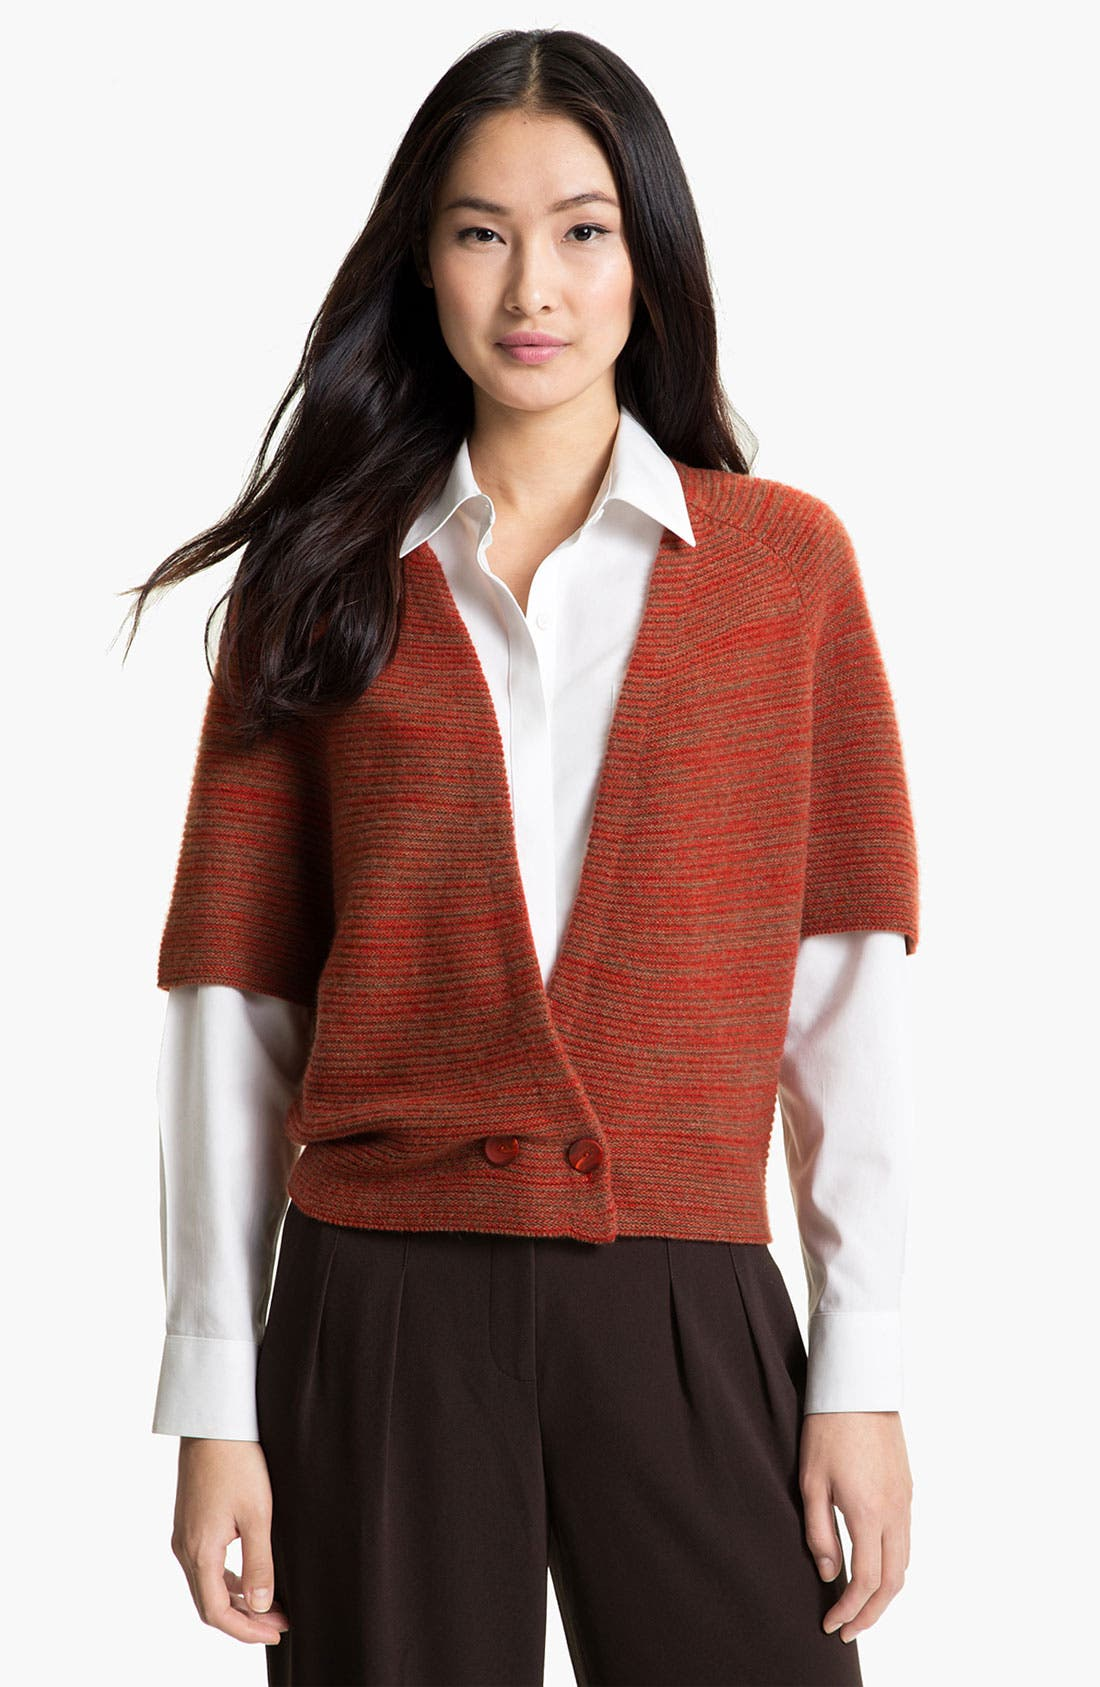 Alternate Image 1 Selected - Nordstrom Collection Cashmere Shrug